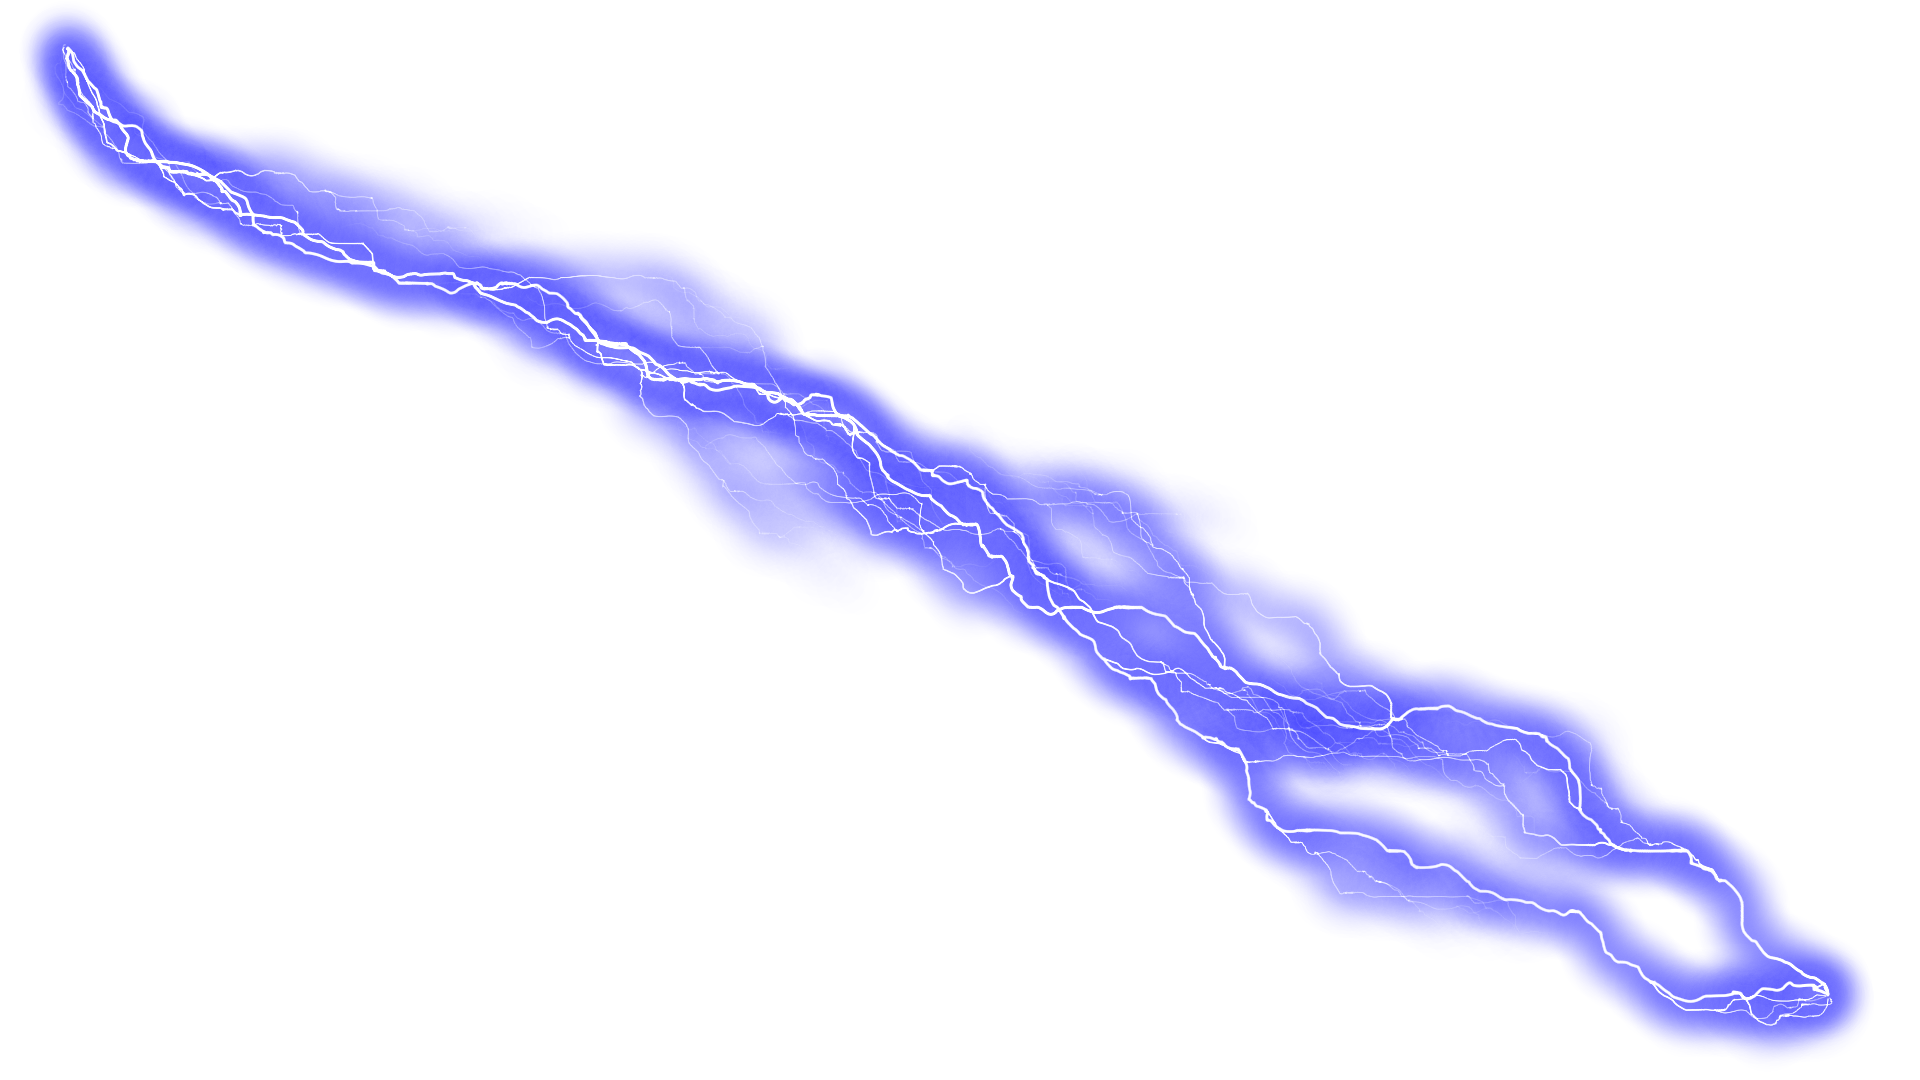 Png transparent images all. Lightning clipart lightning shock